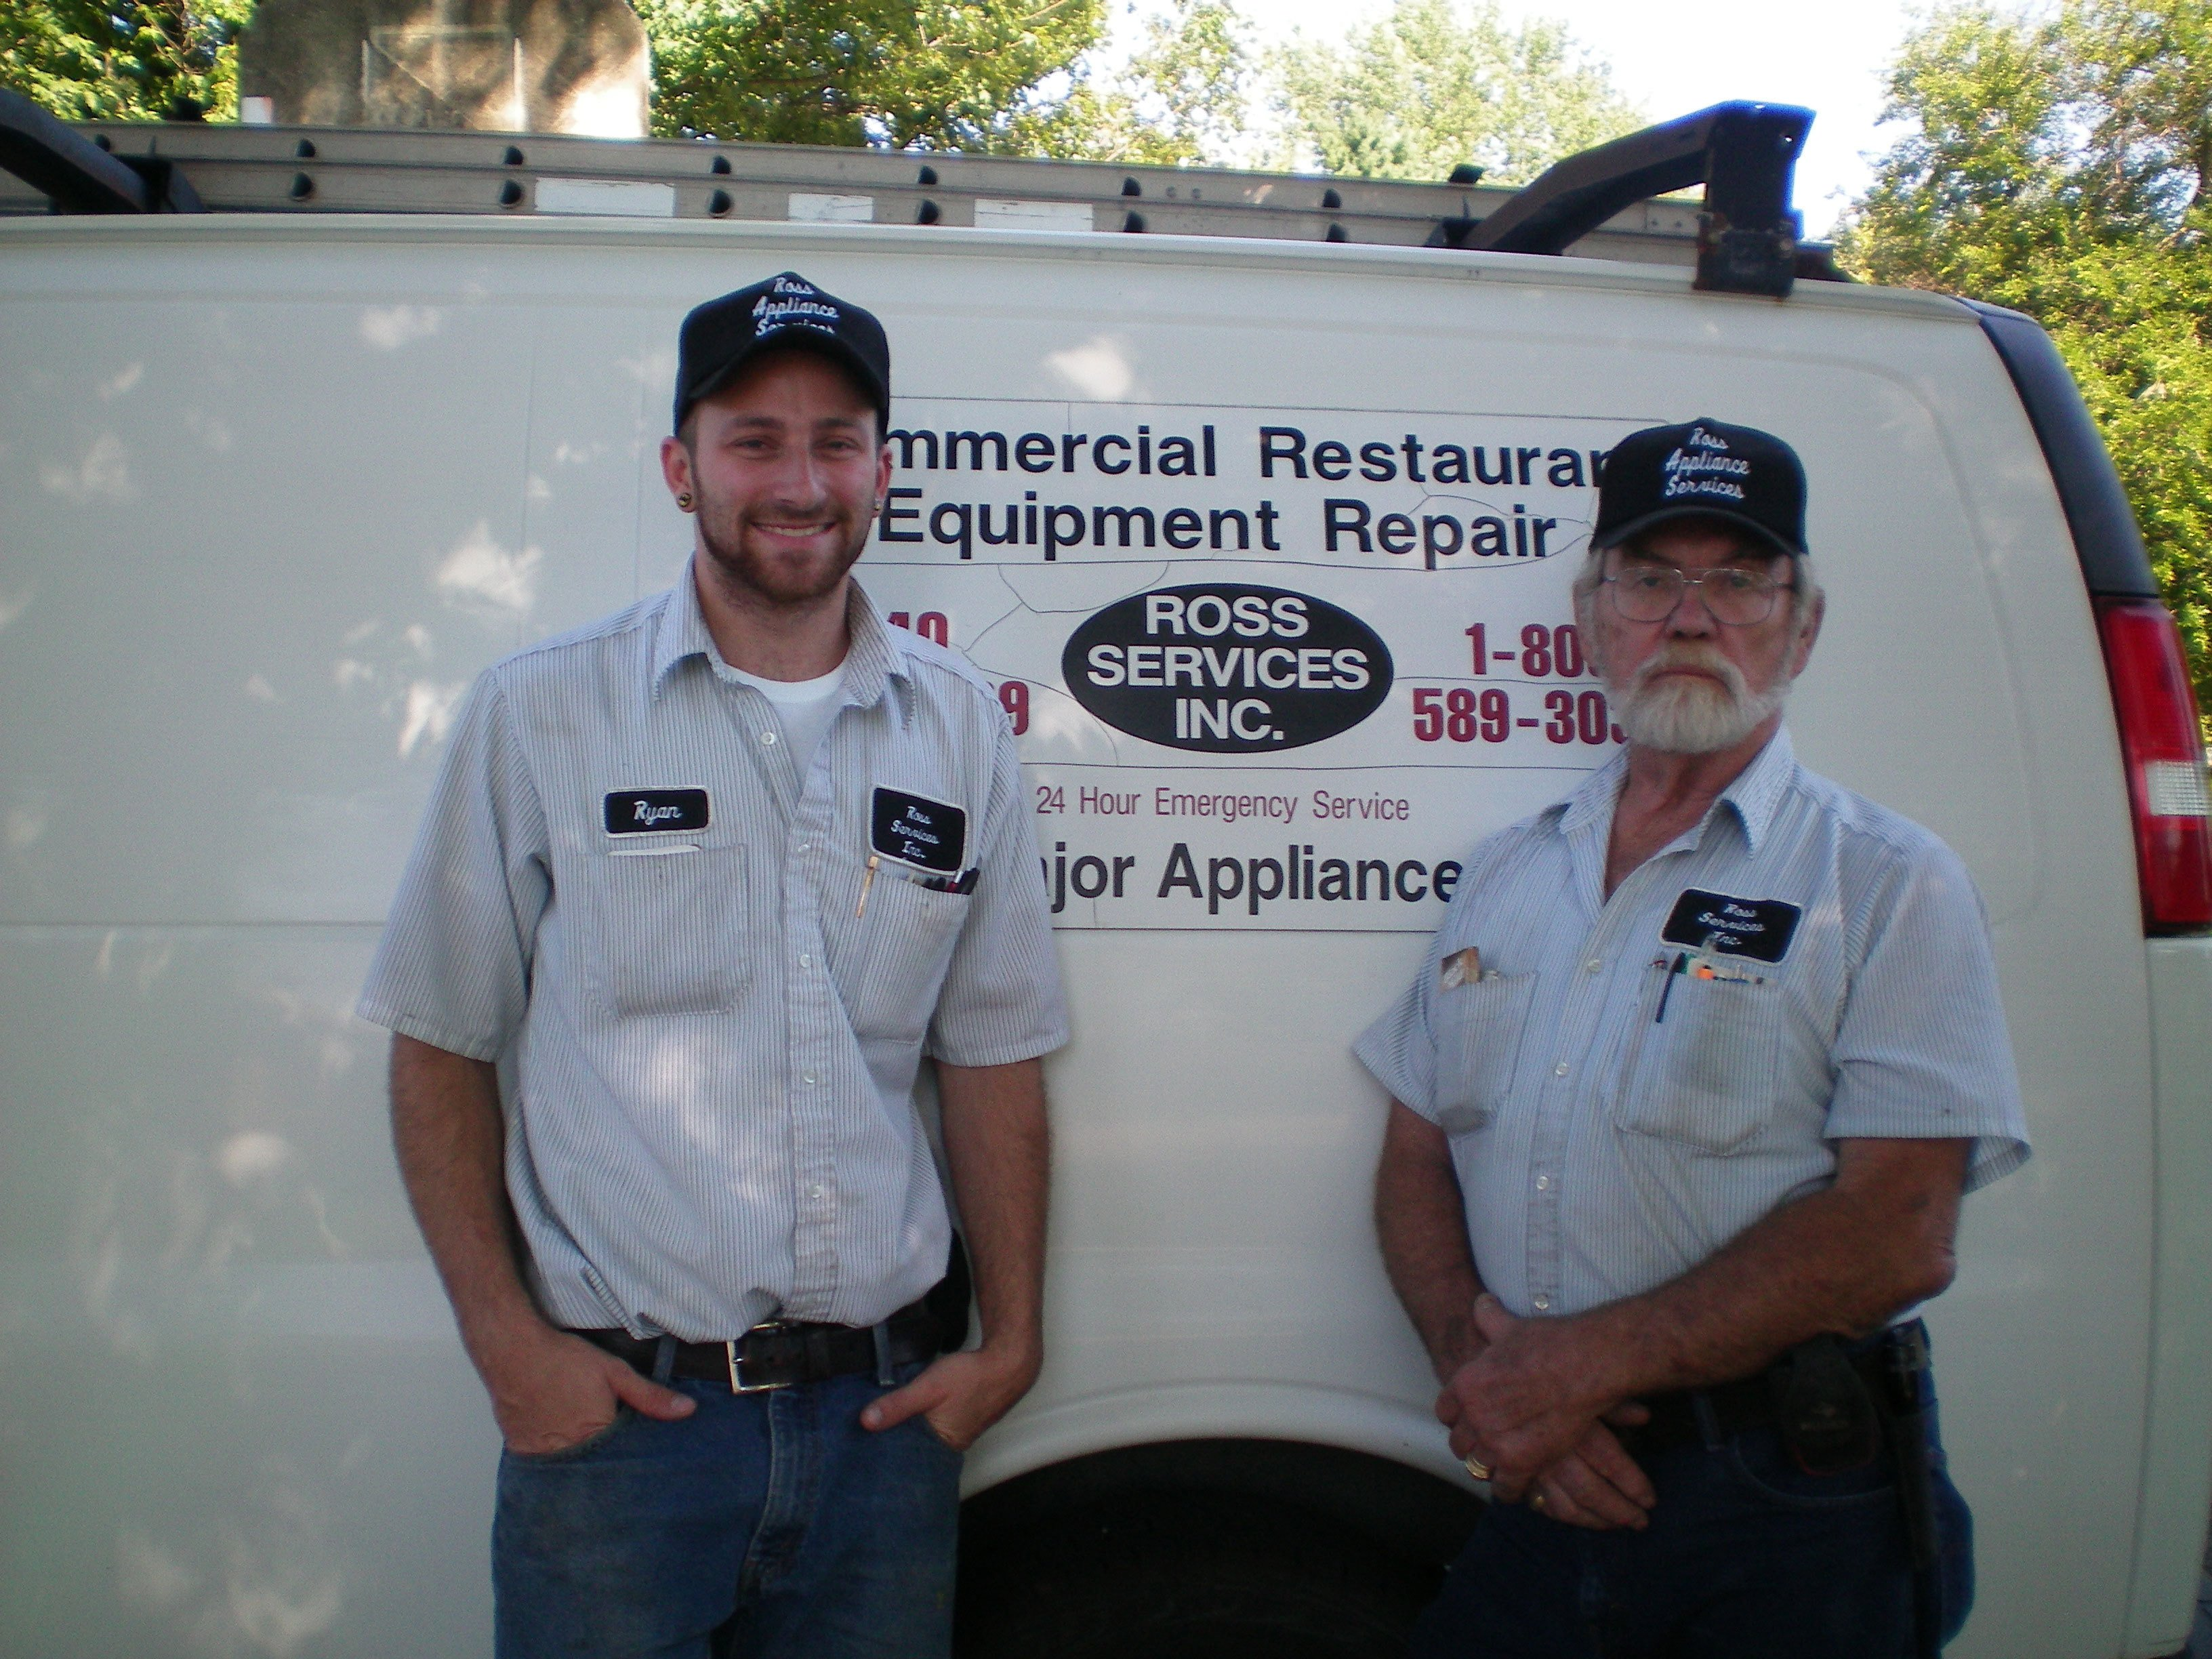 Employees of Ross Appliance Services providing dependable appliance repairs in South Amherst, OH